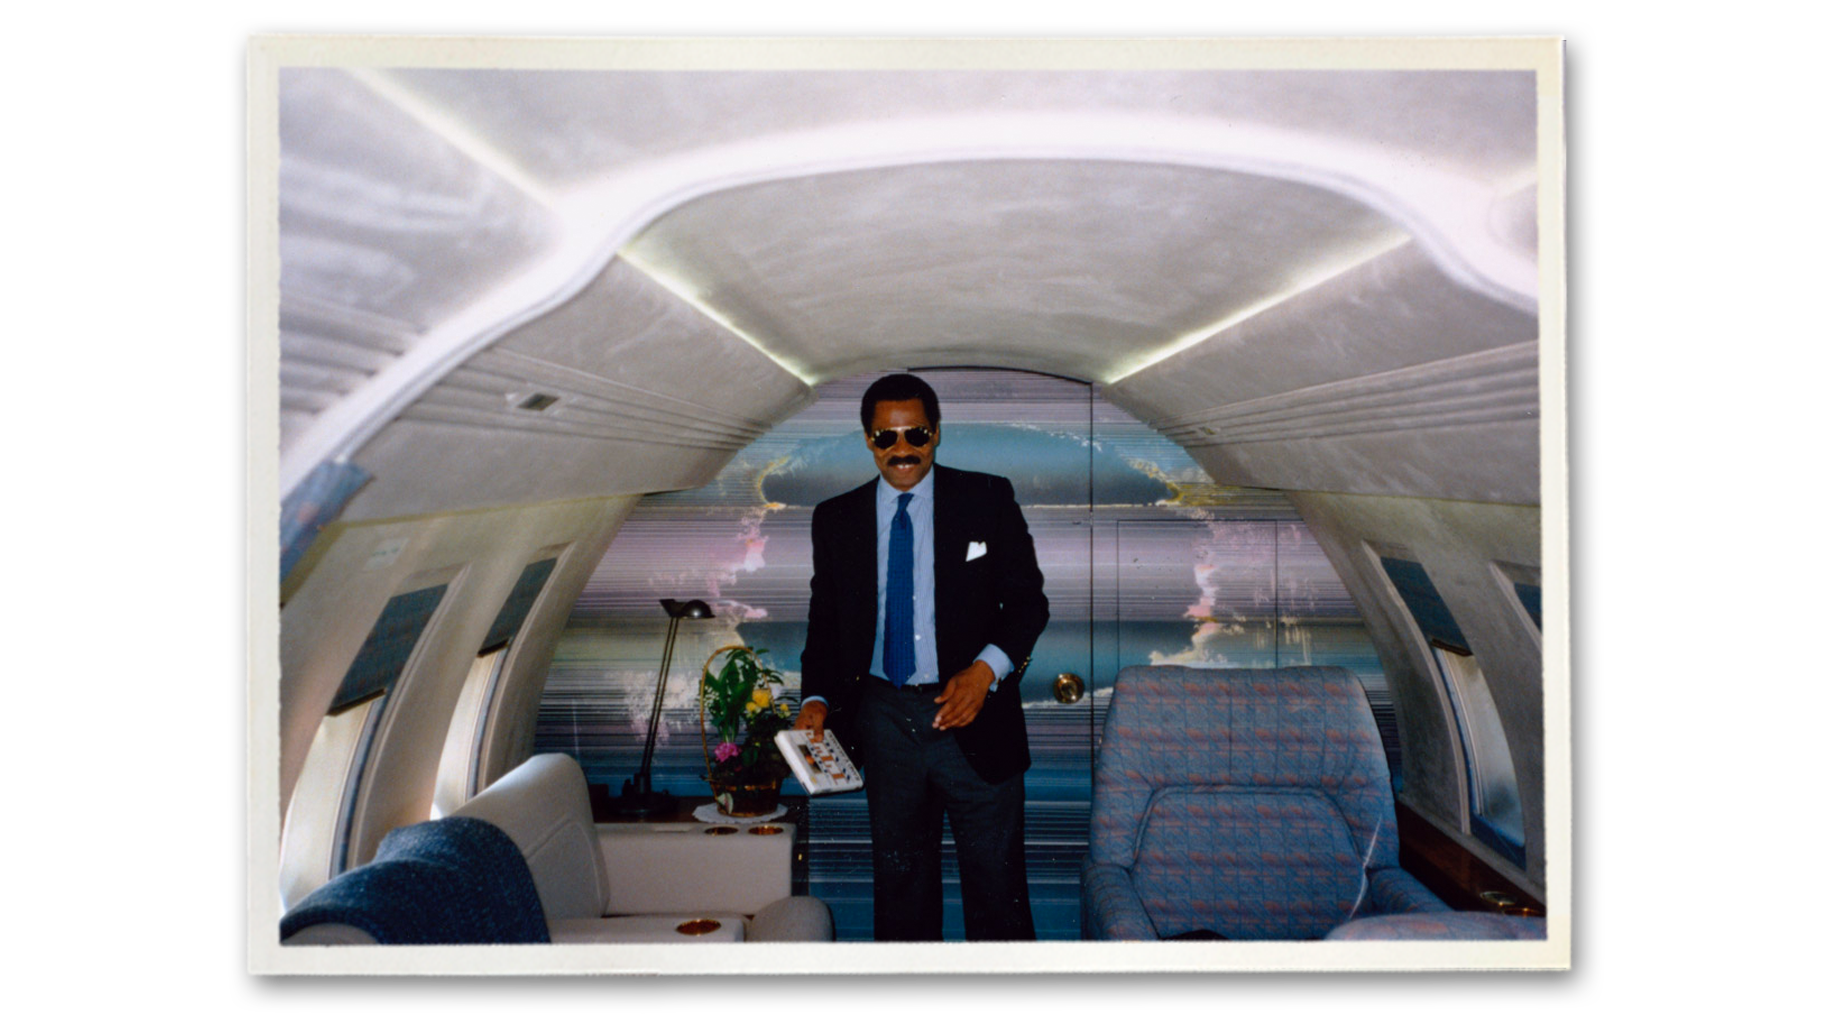 Reginald Lewis private jet.